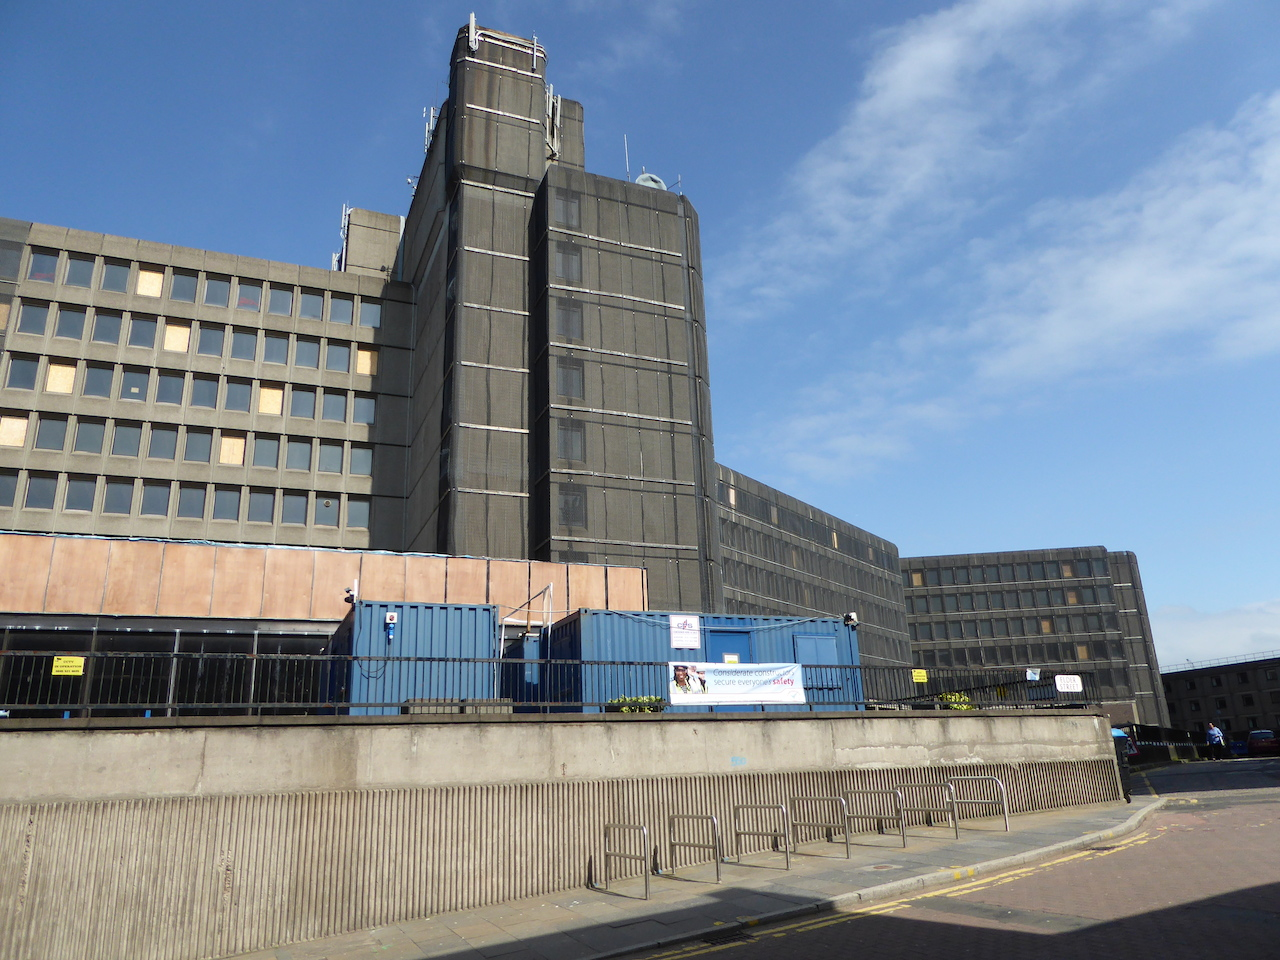 The former New St Andrew House. The gaunt, grey brutalist look of the 1960s